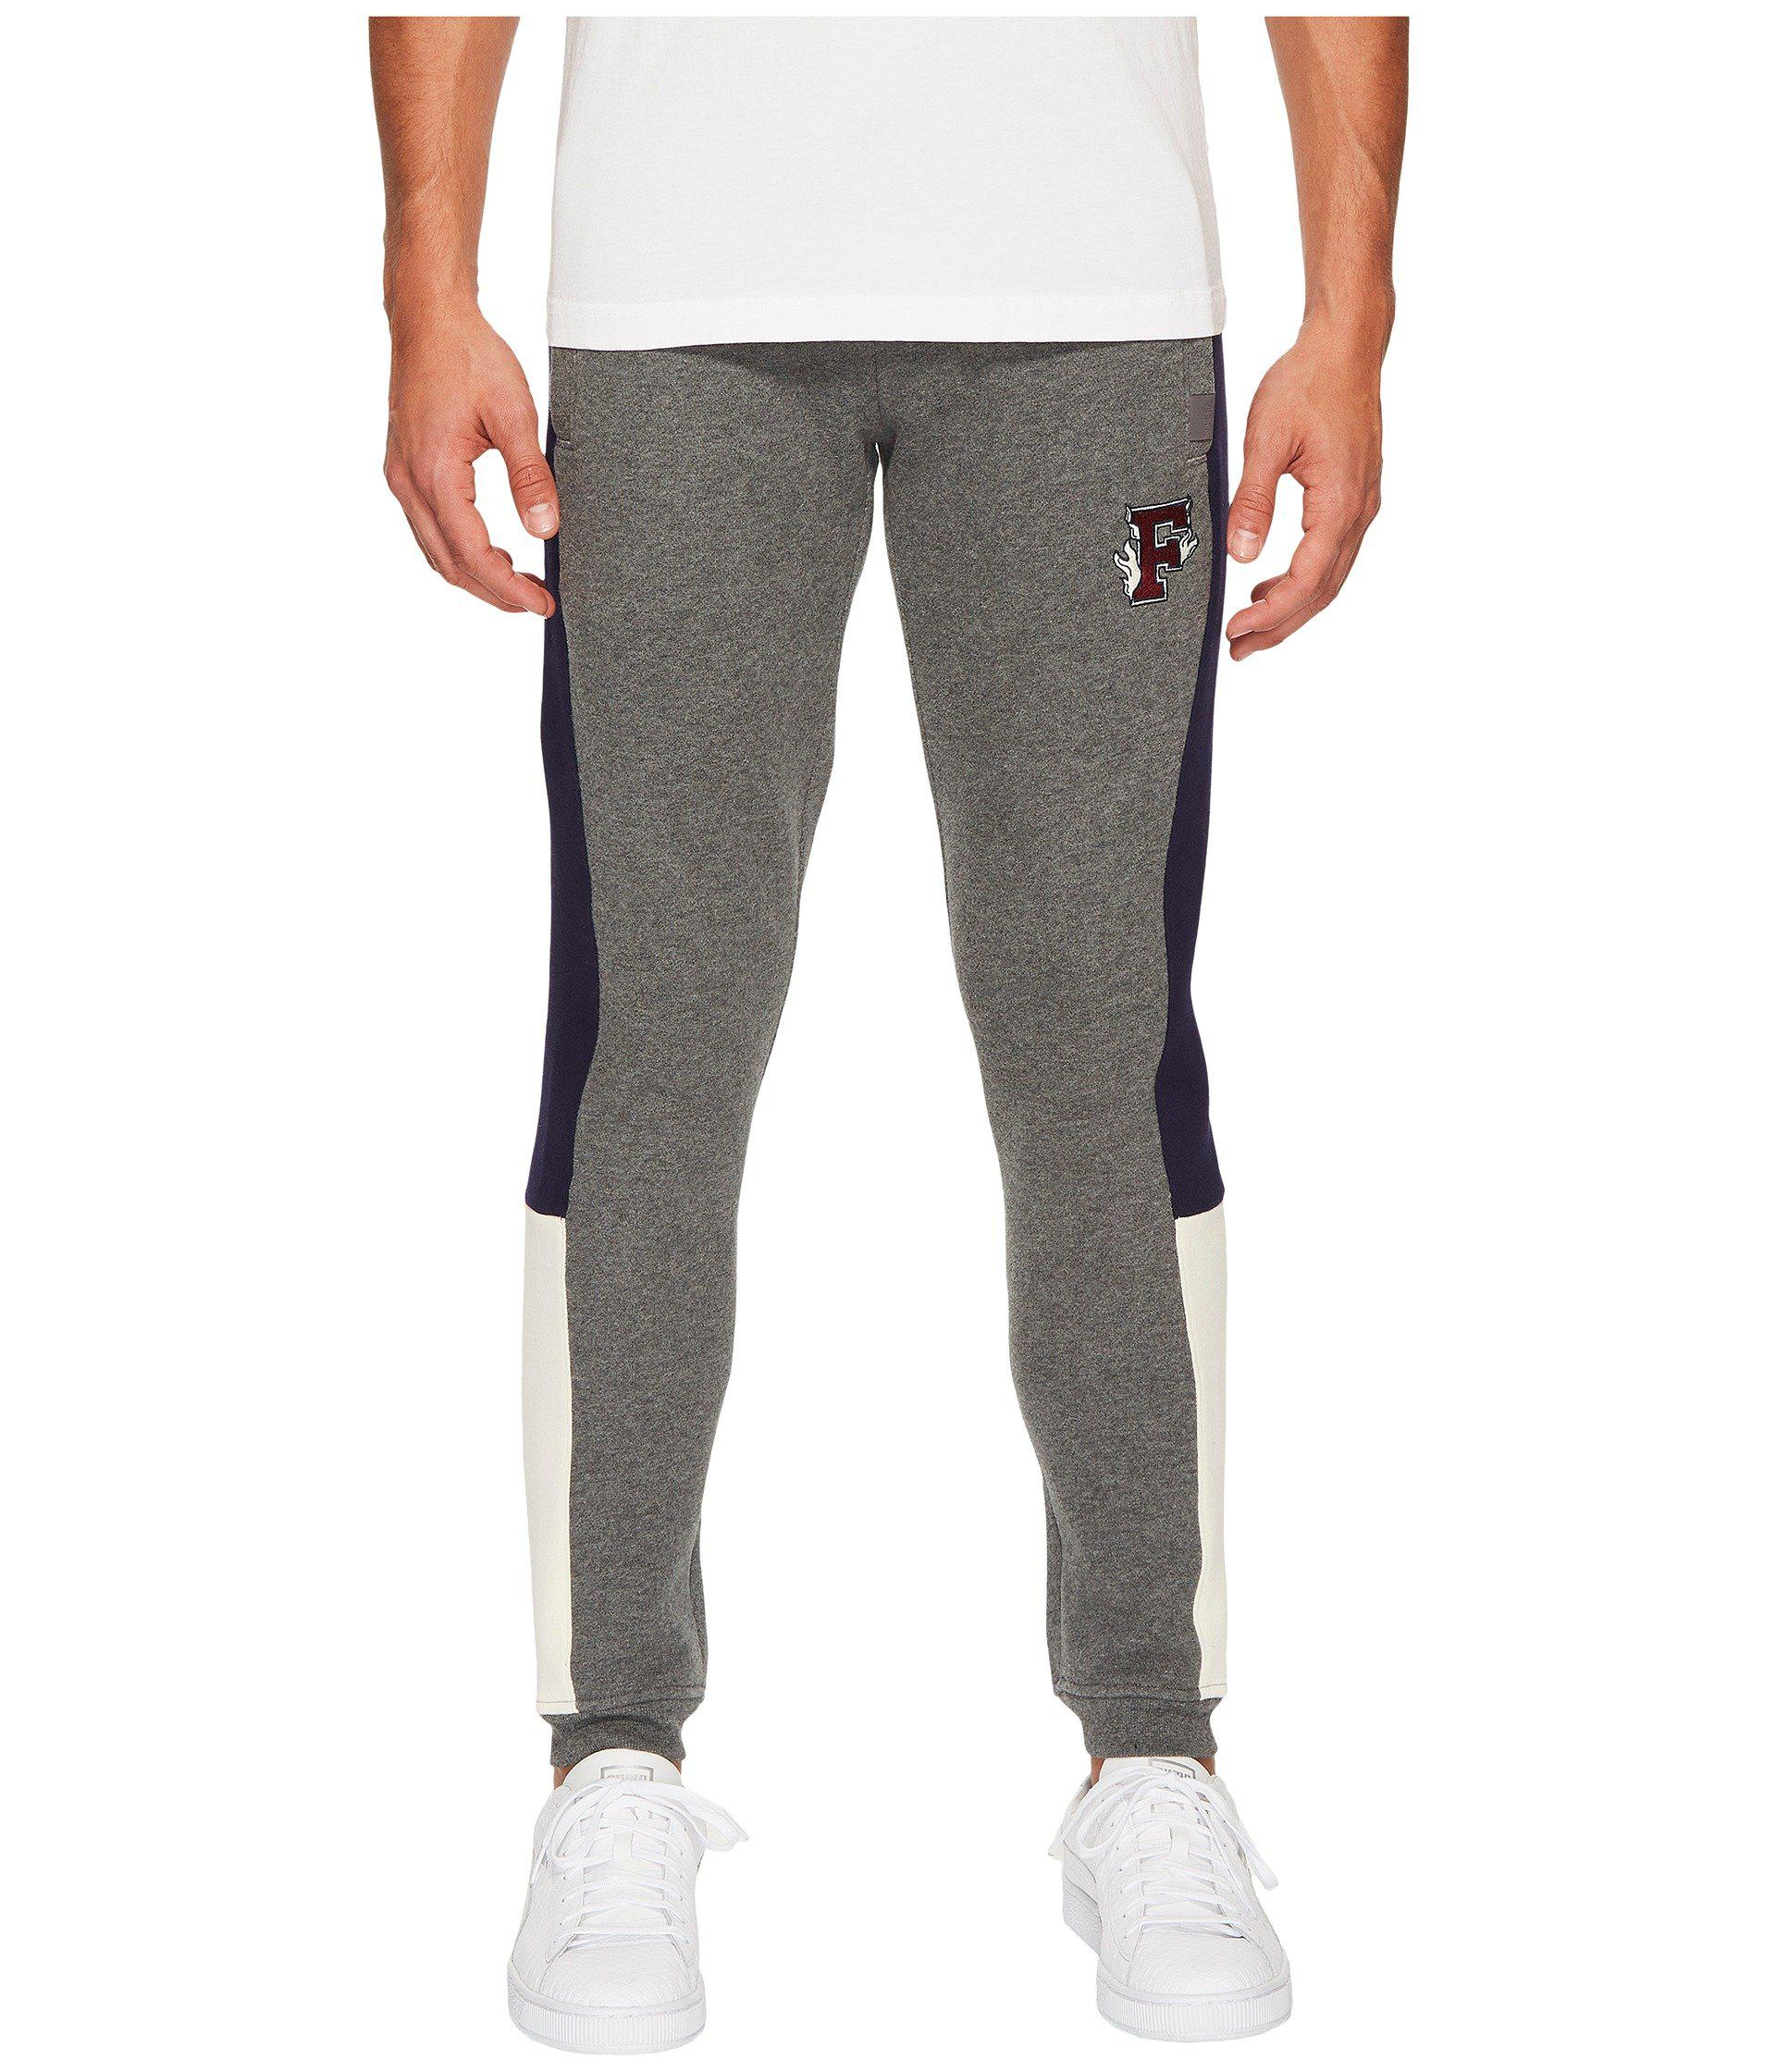 aa0c87ca45b Lyst - PUMA X Fenty By Rihanna Fitted Panel Sweatpants in Gray for Men